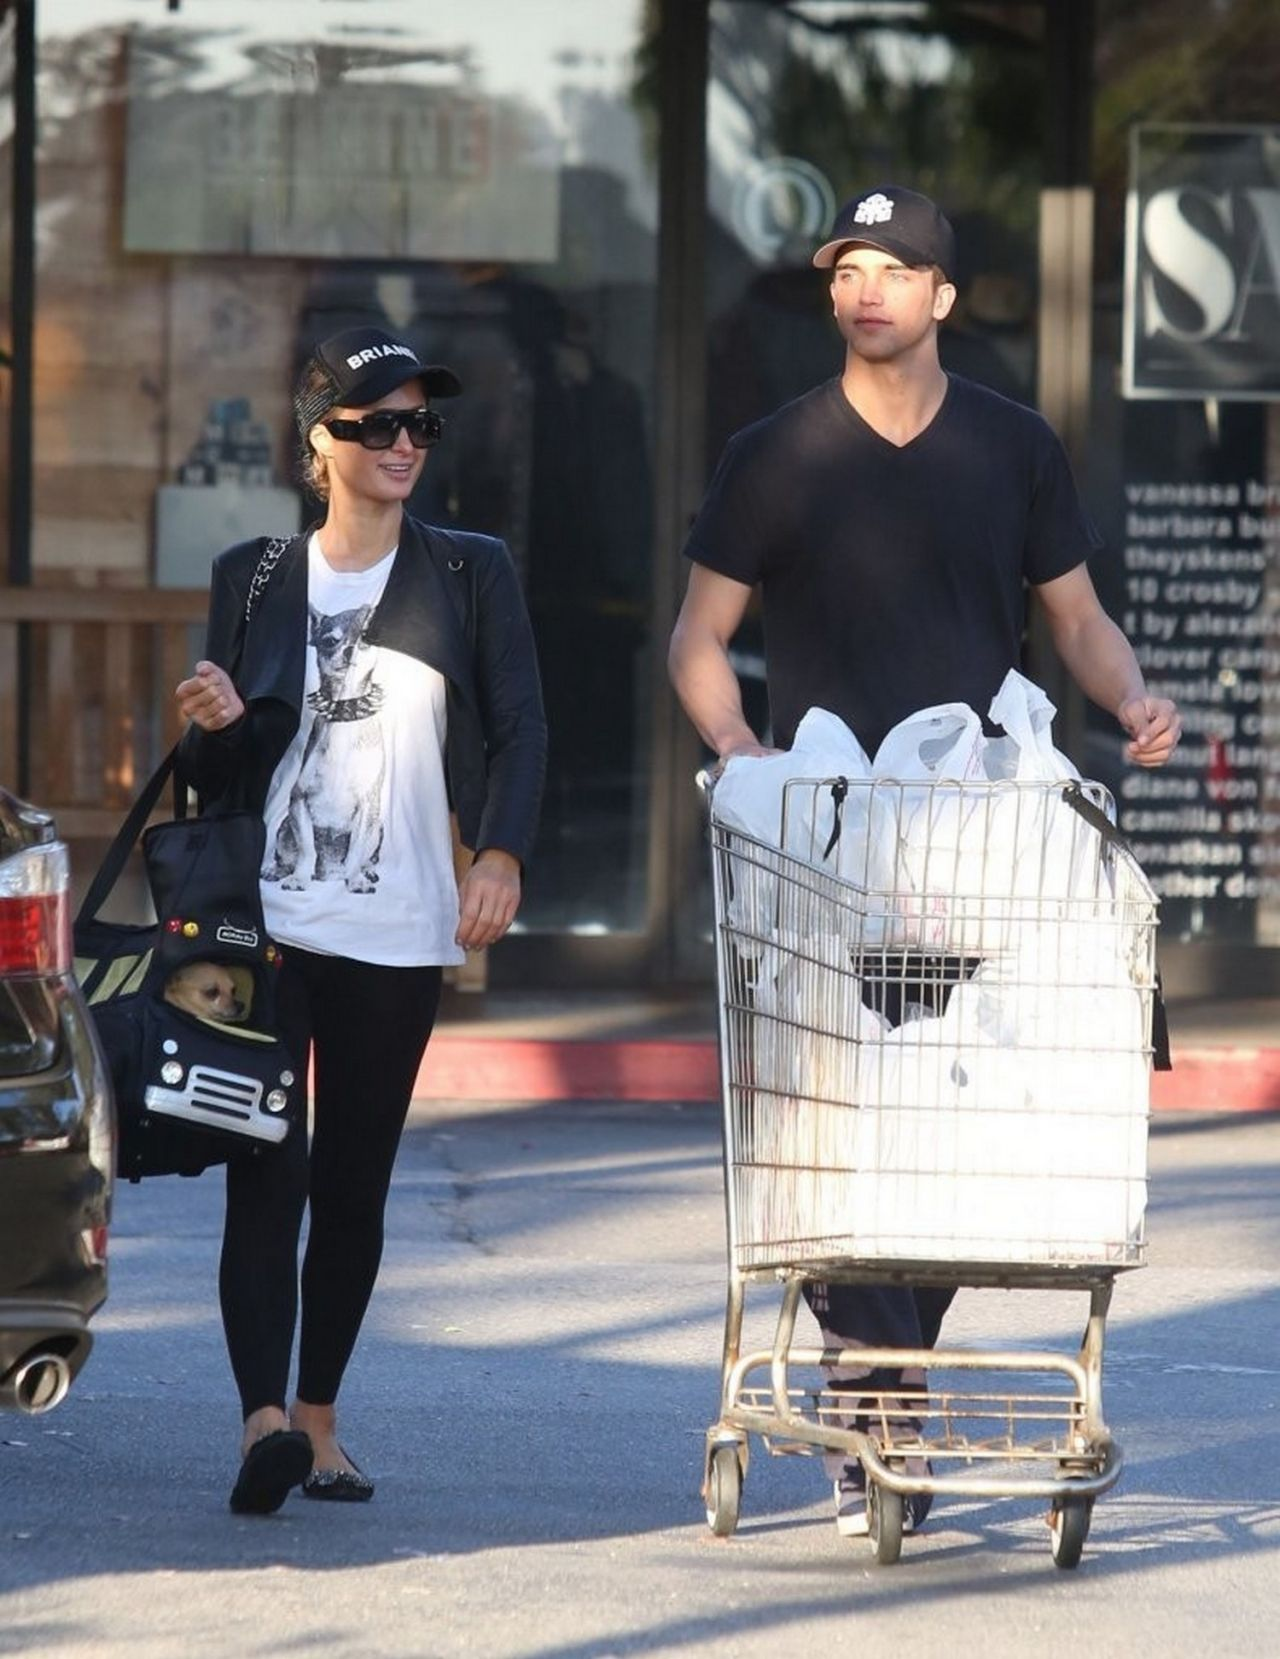 Paris Hilton and River Viiperi (Her Boyfriend) Shop For Groceries - February 2014